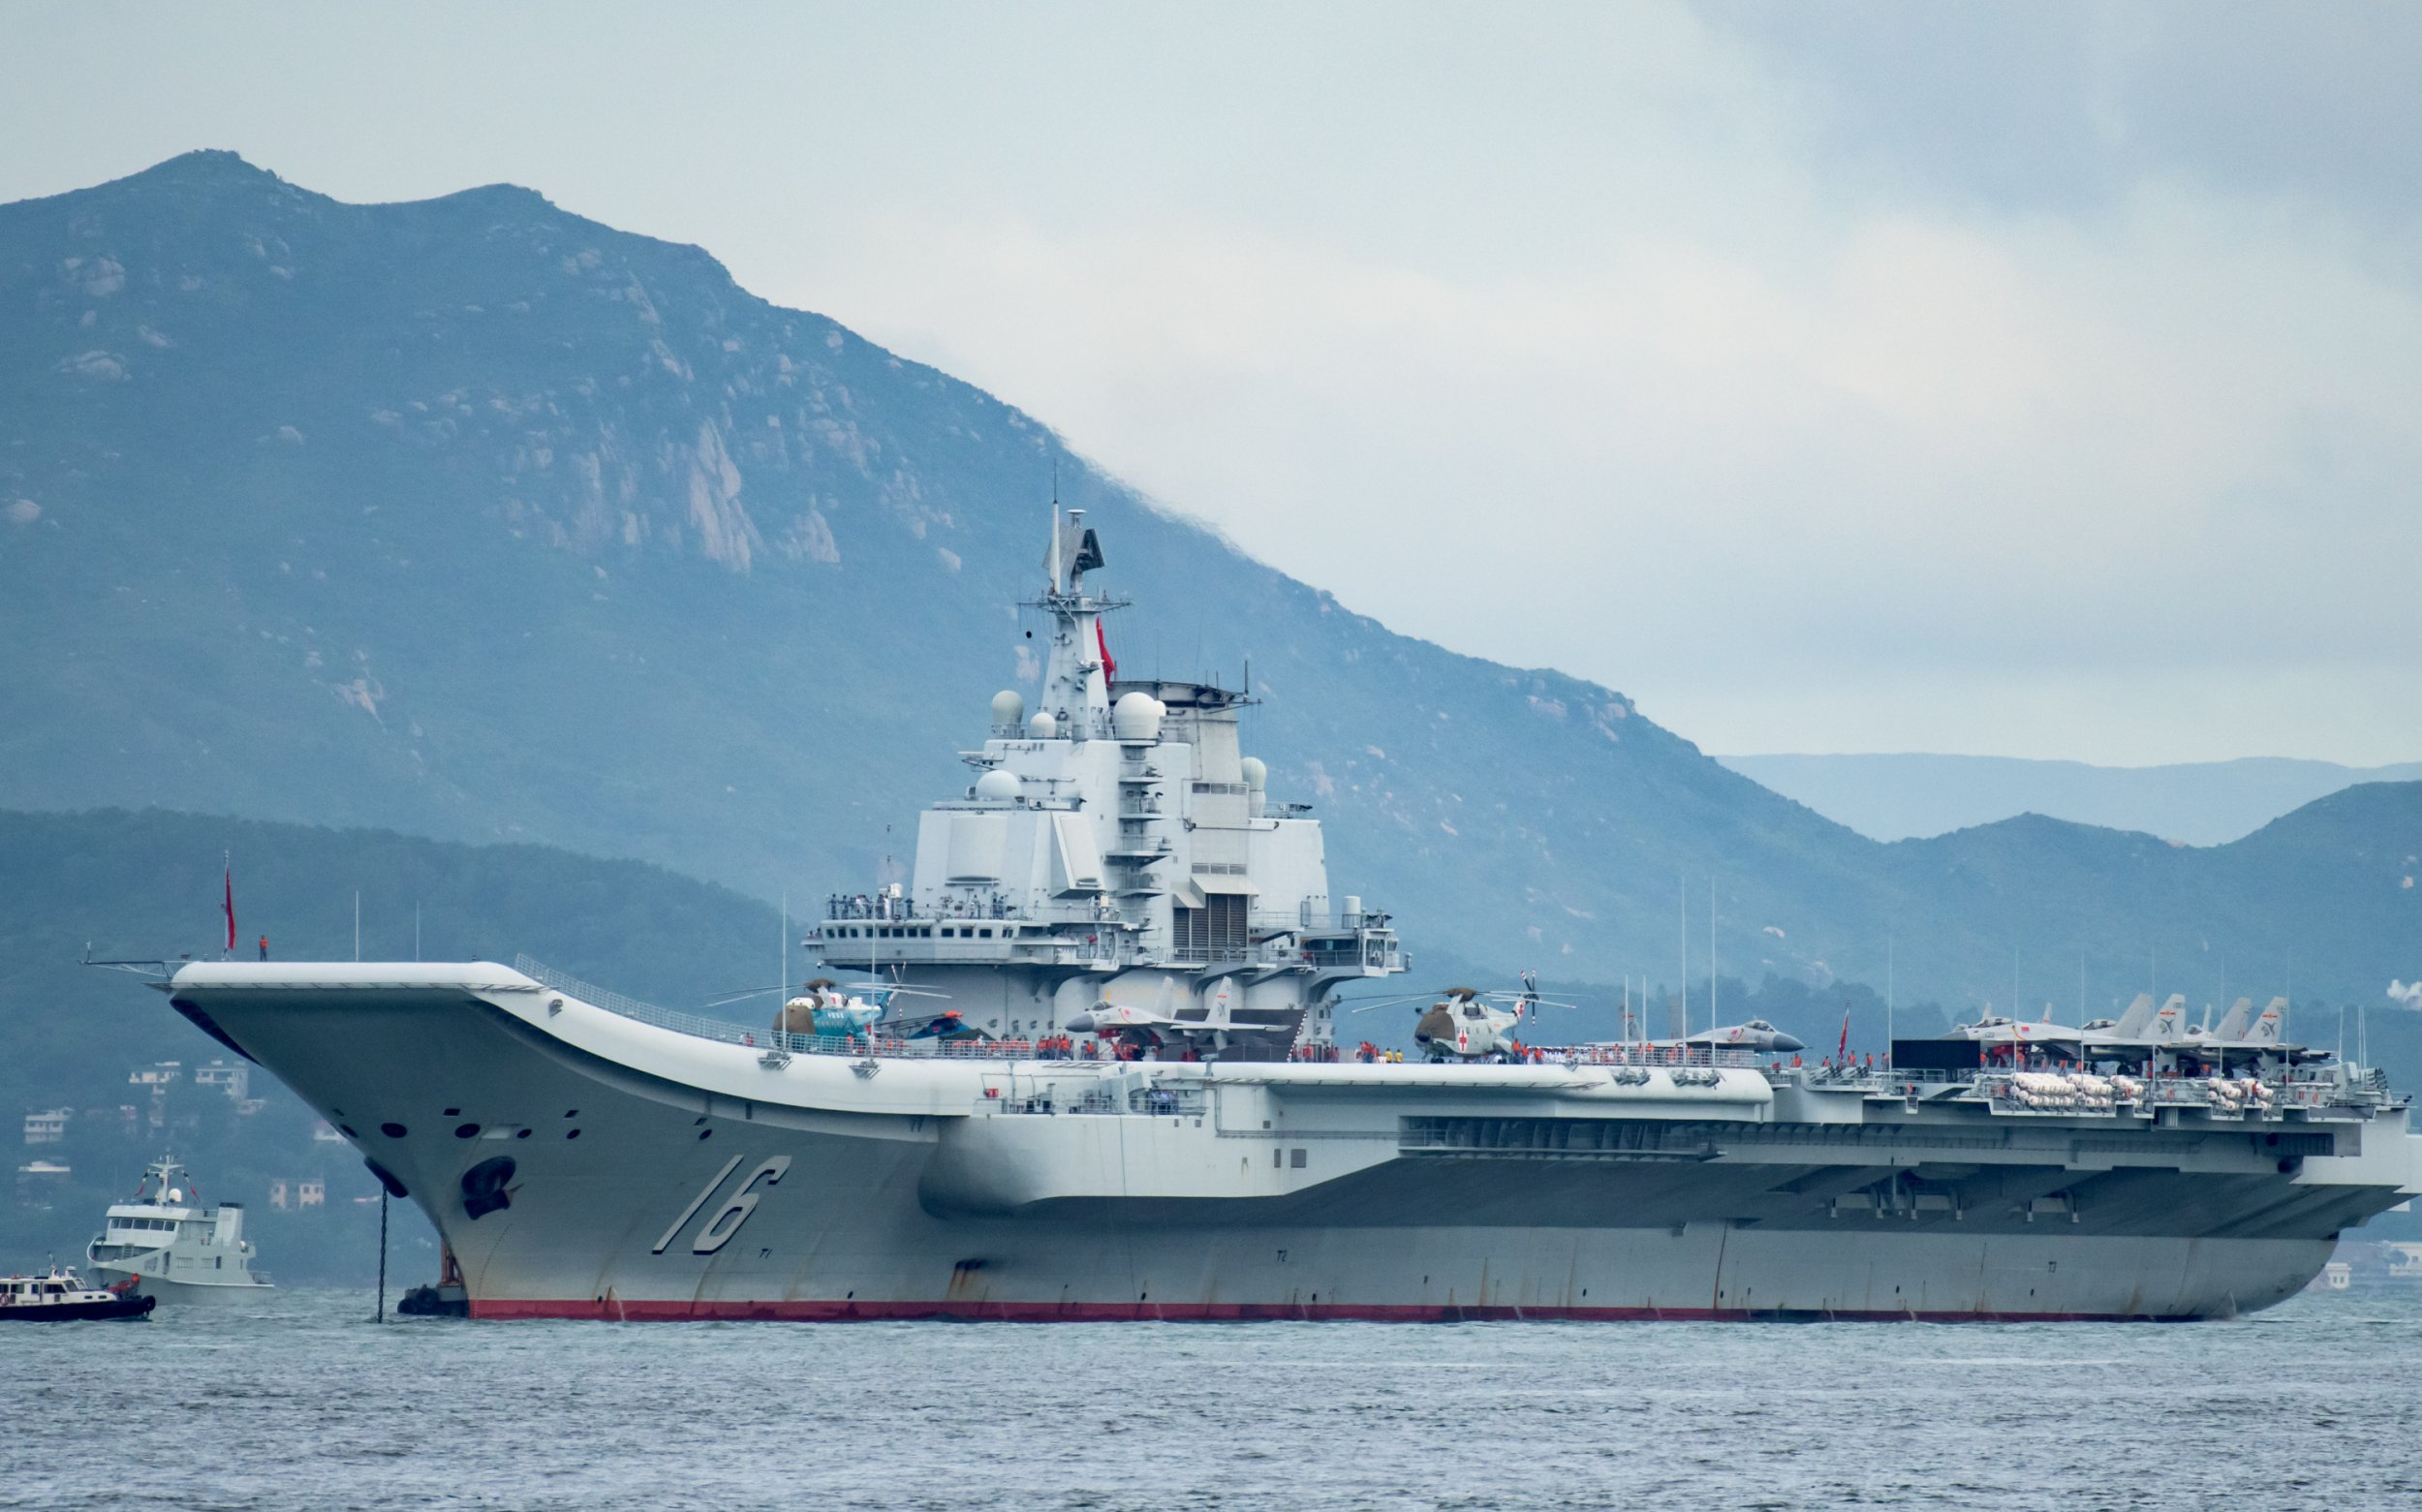 Liaoning_Airfract_Carrier_China